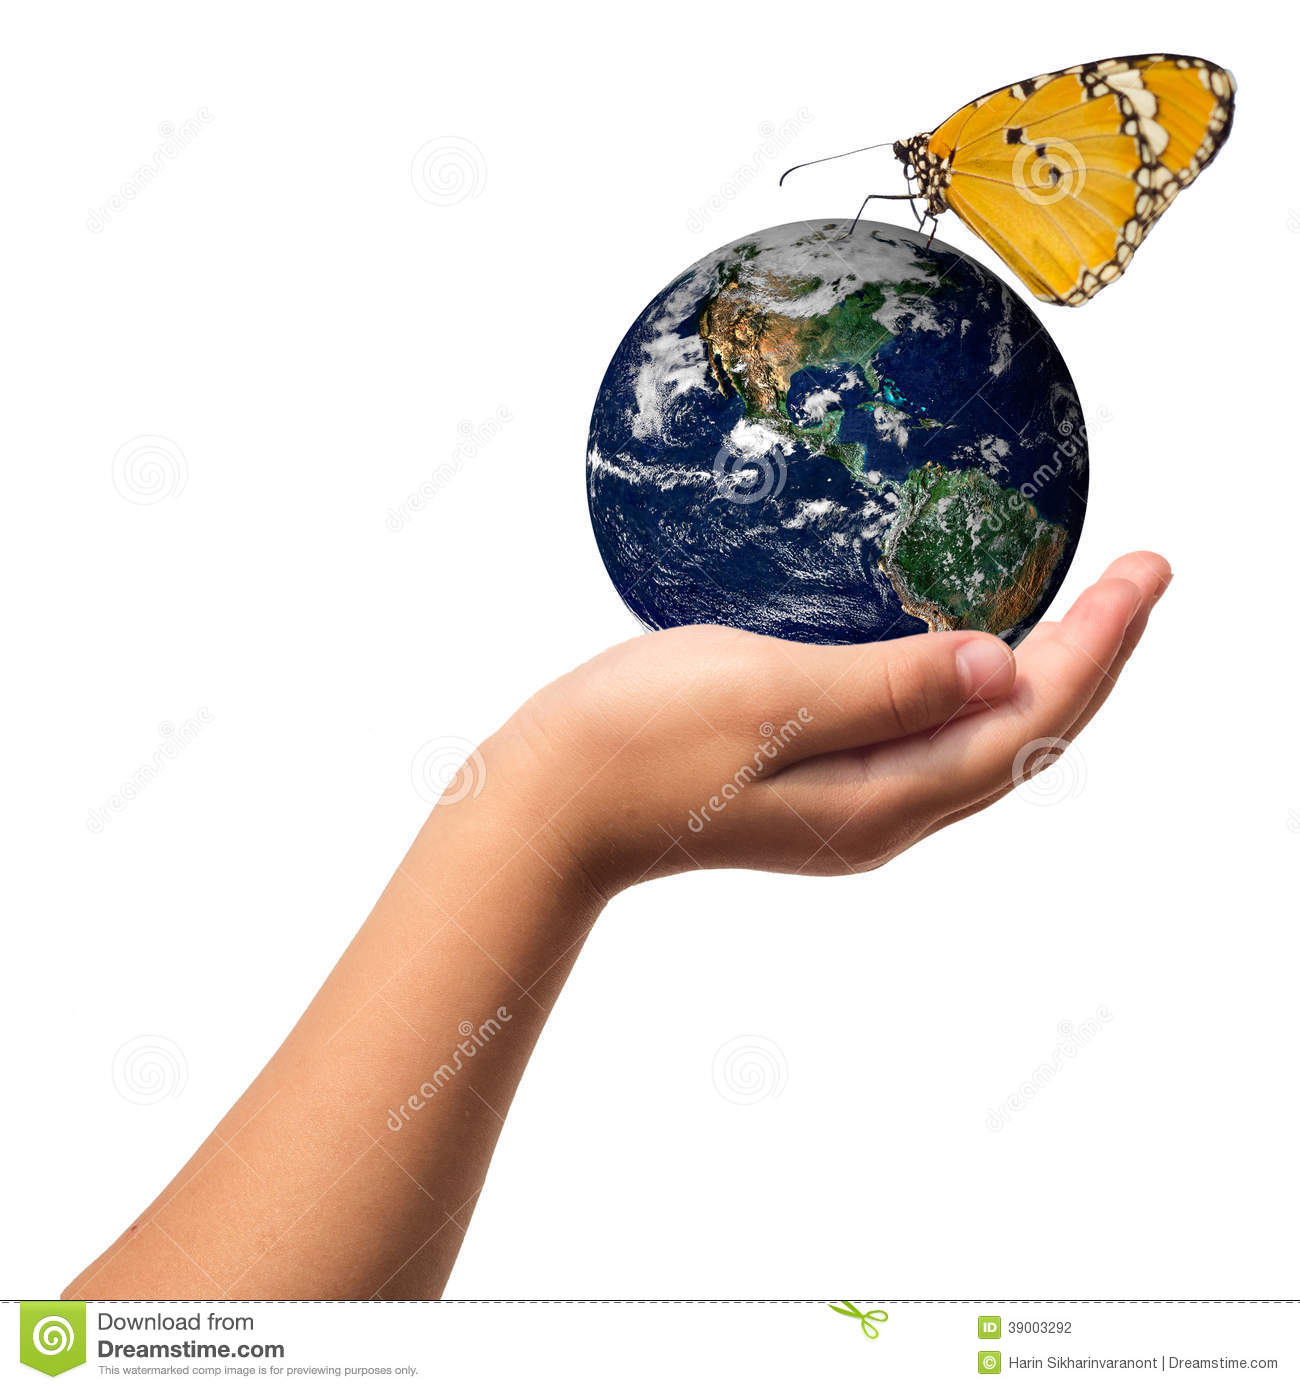 Earth Care With Helping Hands Concept Stock Photo   Image  39003292